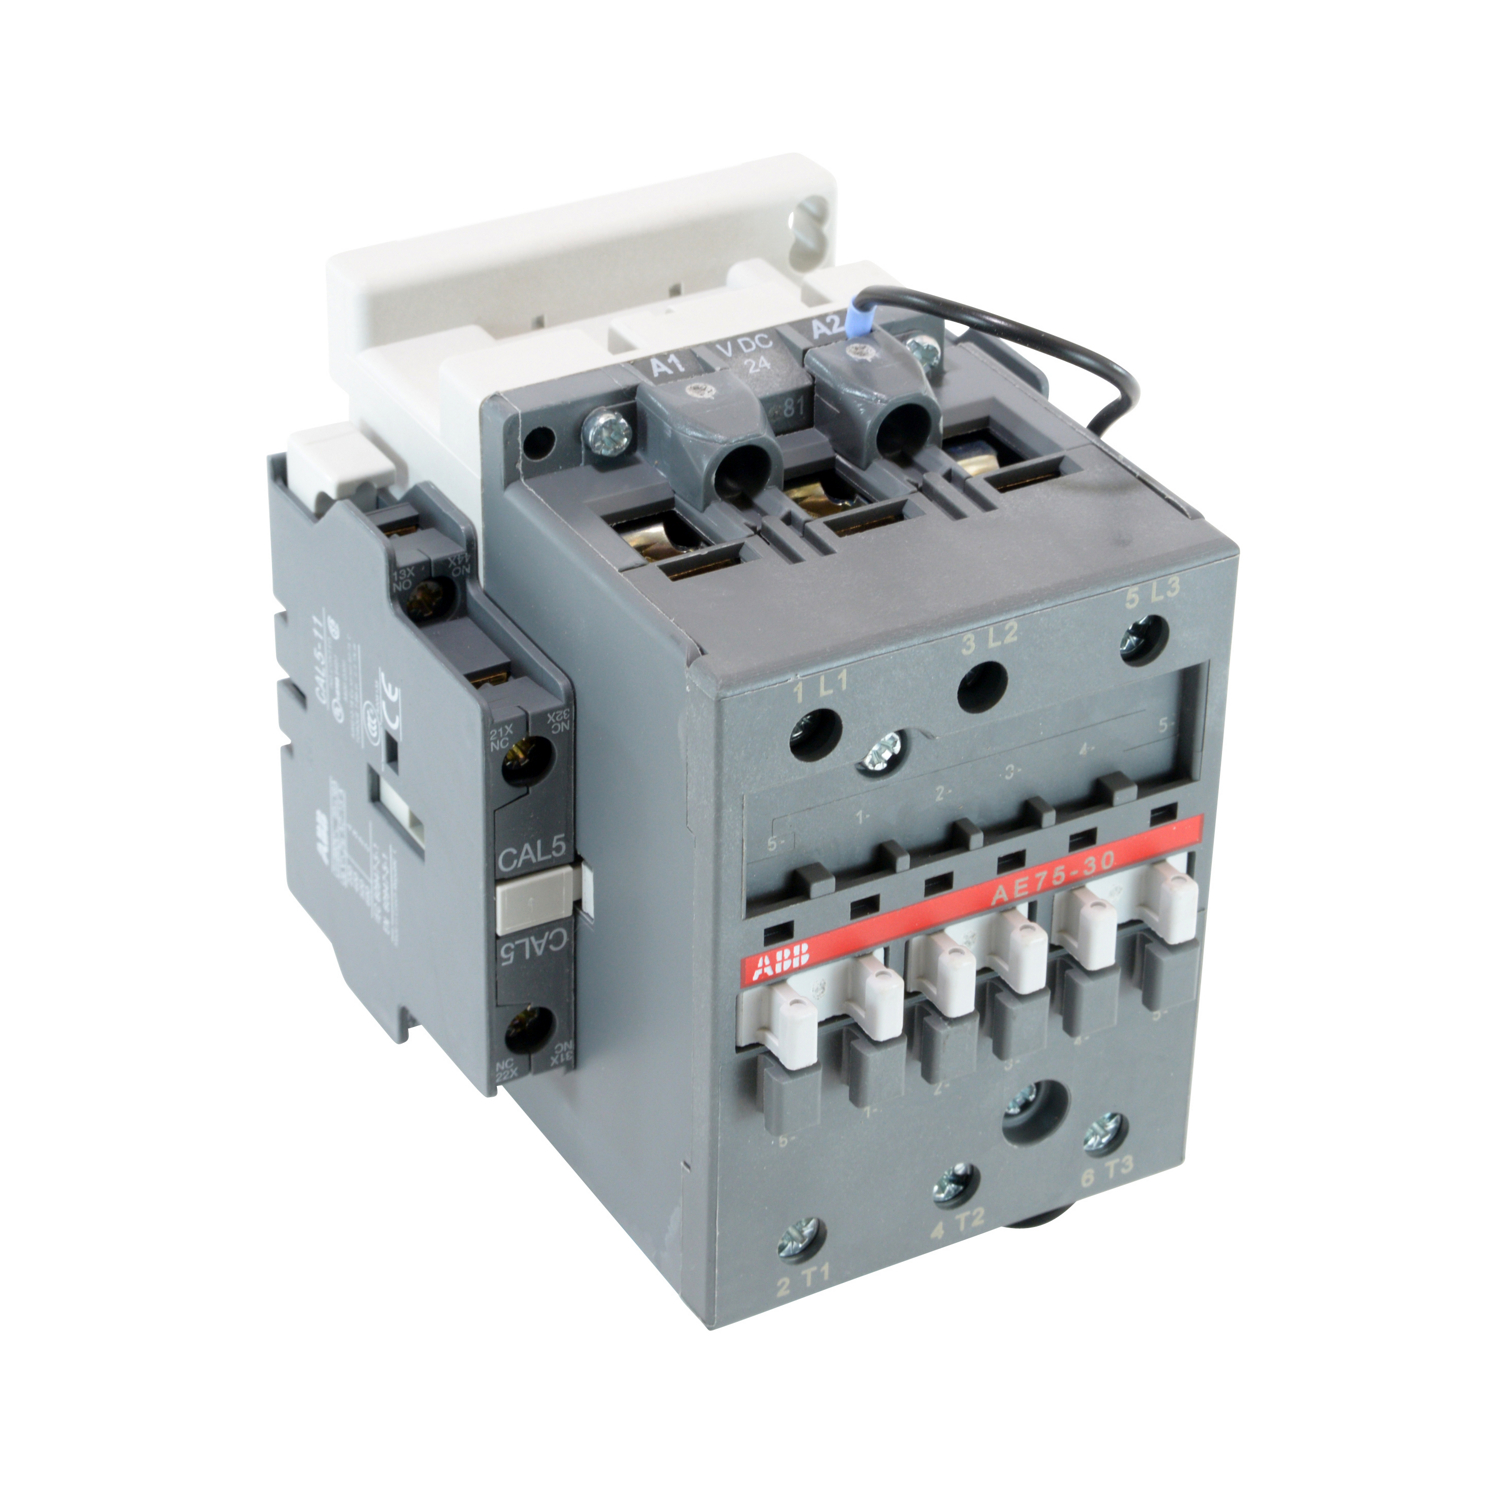 Industrial Control Motor Starter Controls Contactors Standard Nema 3 Phase Contactor Wiring Pole 90 Amp Non Reversing Across The Line With